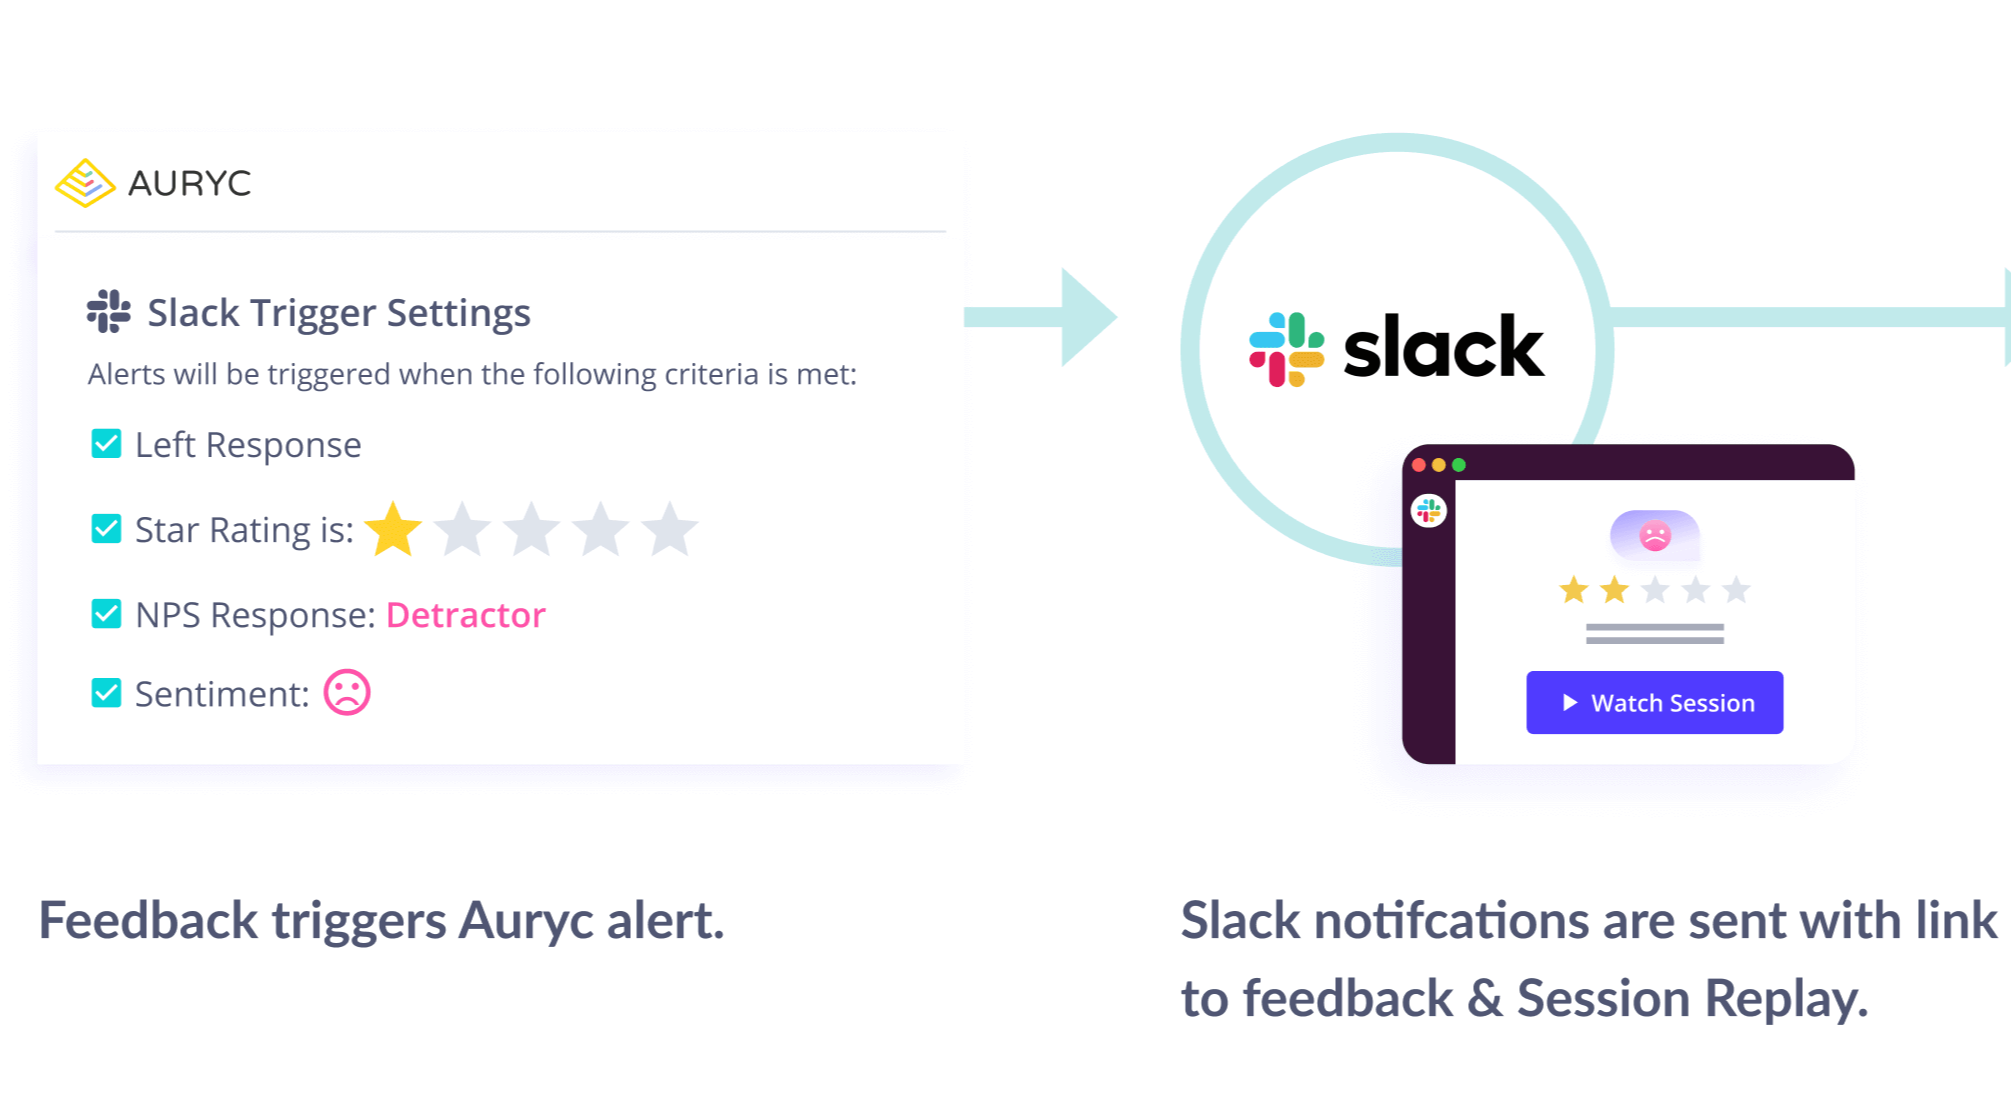 Auryc-integrates-with-slack -with-instant-customer-experience-alerts-2